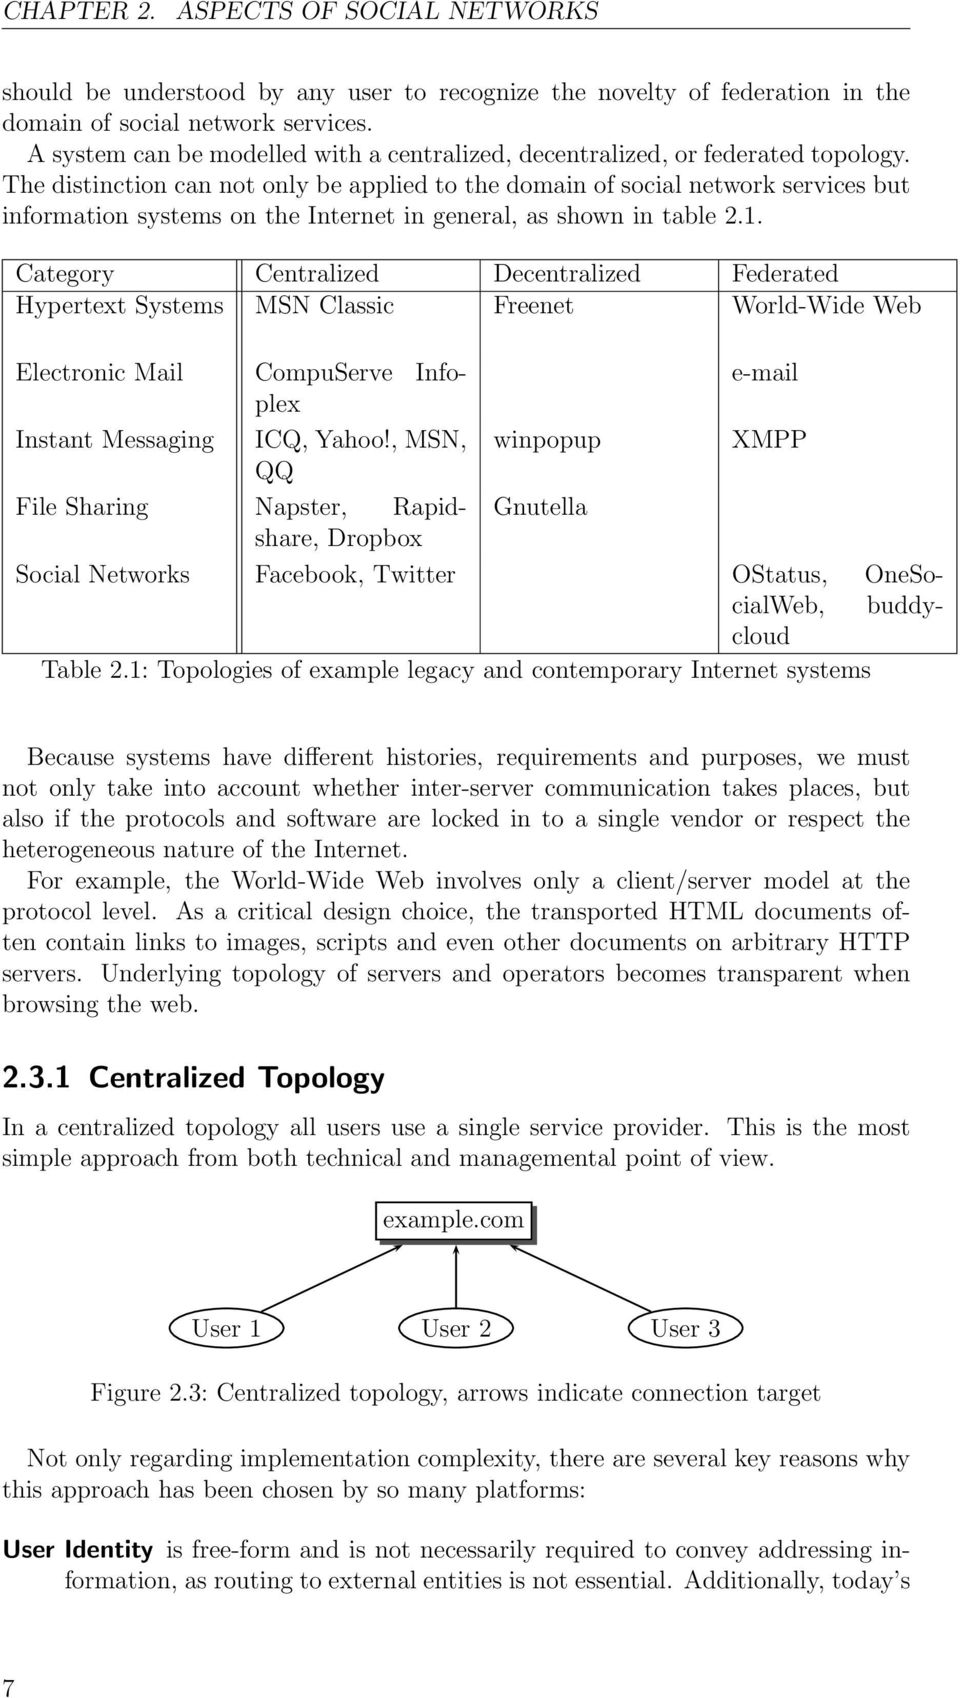 The distinction can not only be applied to the domain of social network services but information systems on the Internet in general, as shown in table 2.1.